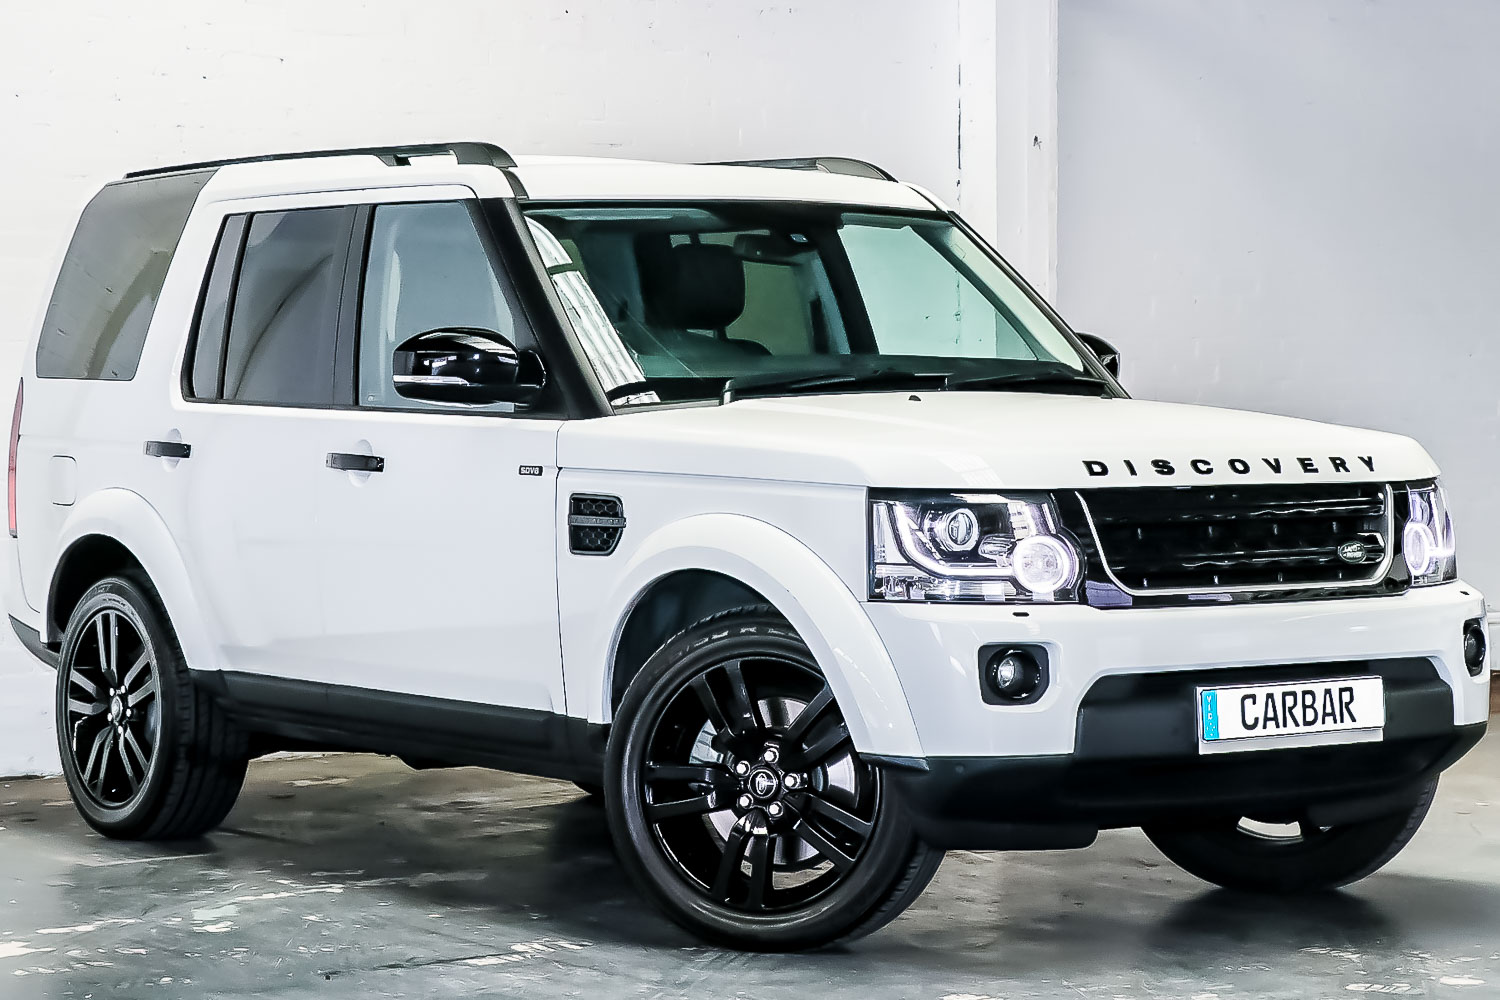 Carbar-2015-Land-Rover-Discovery-341420181016-165637.jpg